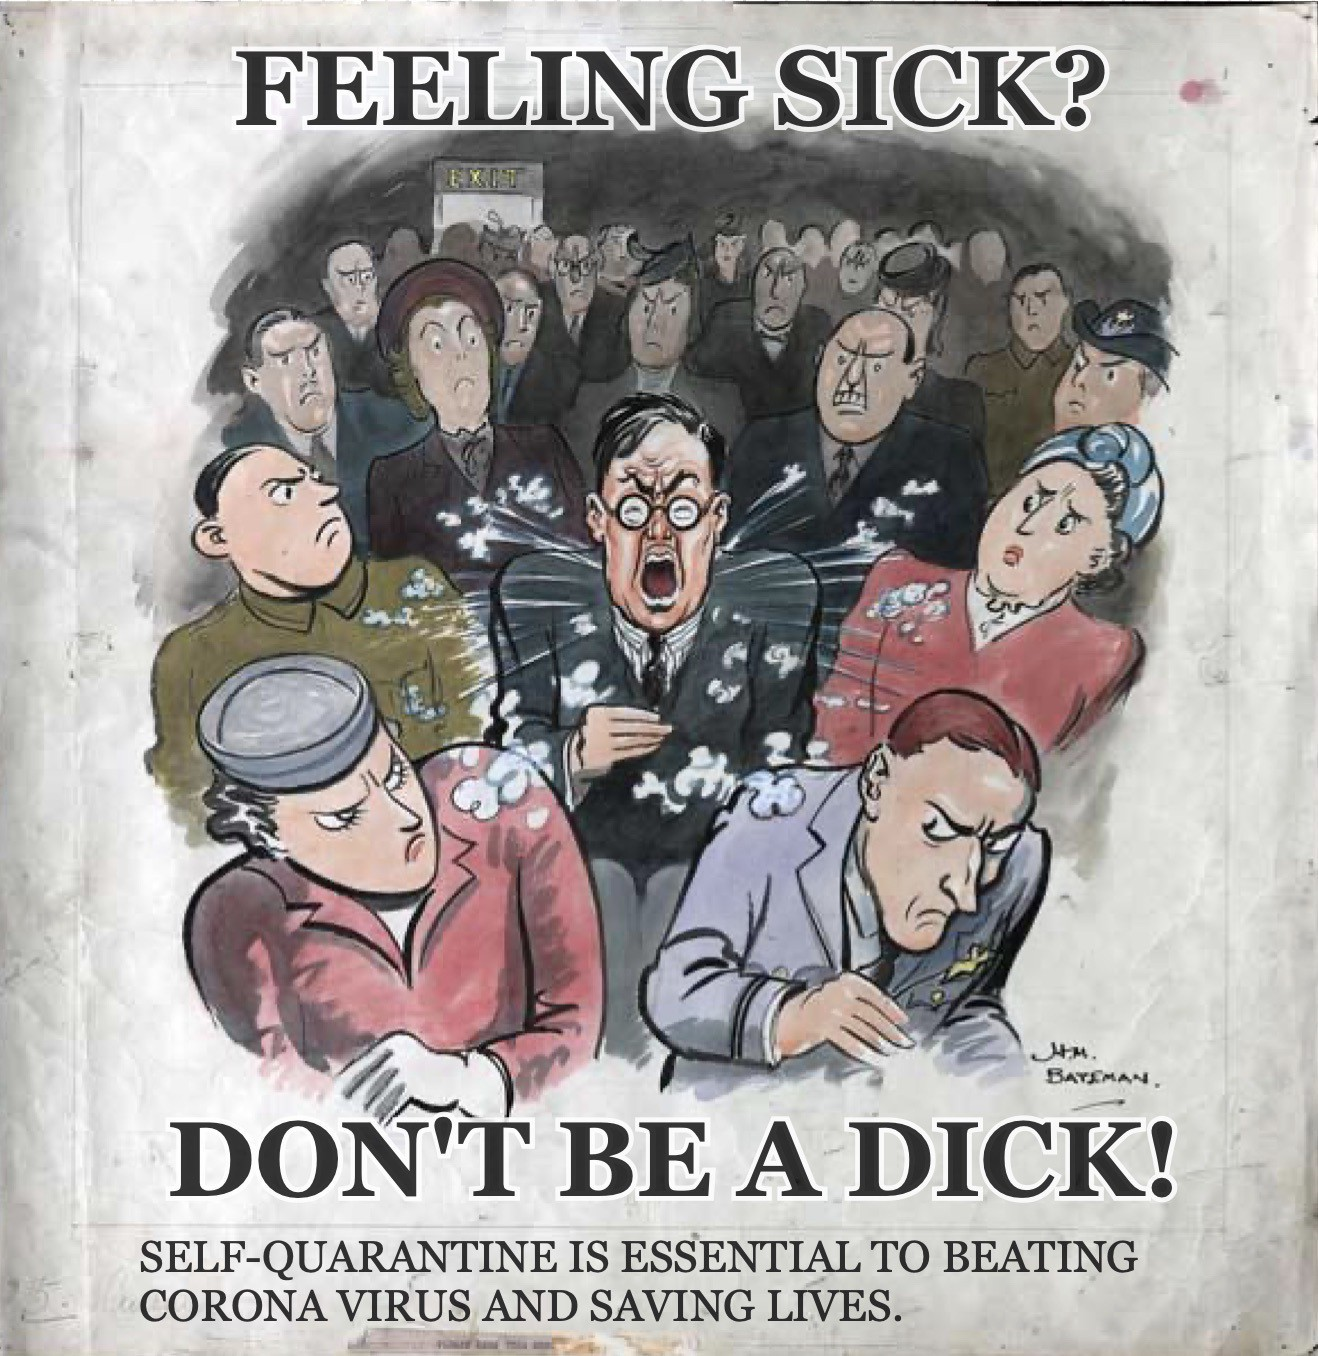 A world war 2 style poster with a man coughing in a crowd witht he phrase 'Feeling sick? Don't be a dick. Self-quarantine is essential to beating Corona Virus and saving lives.'